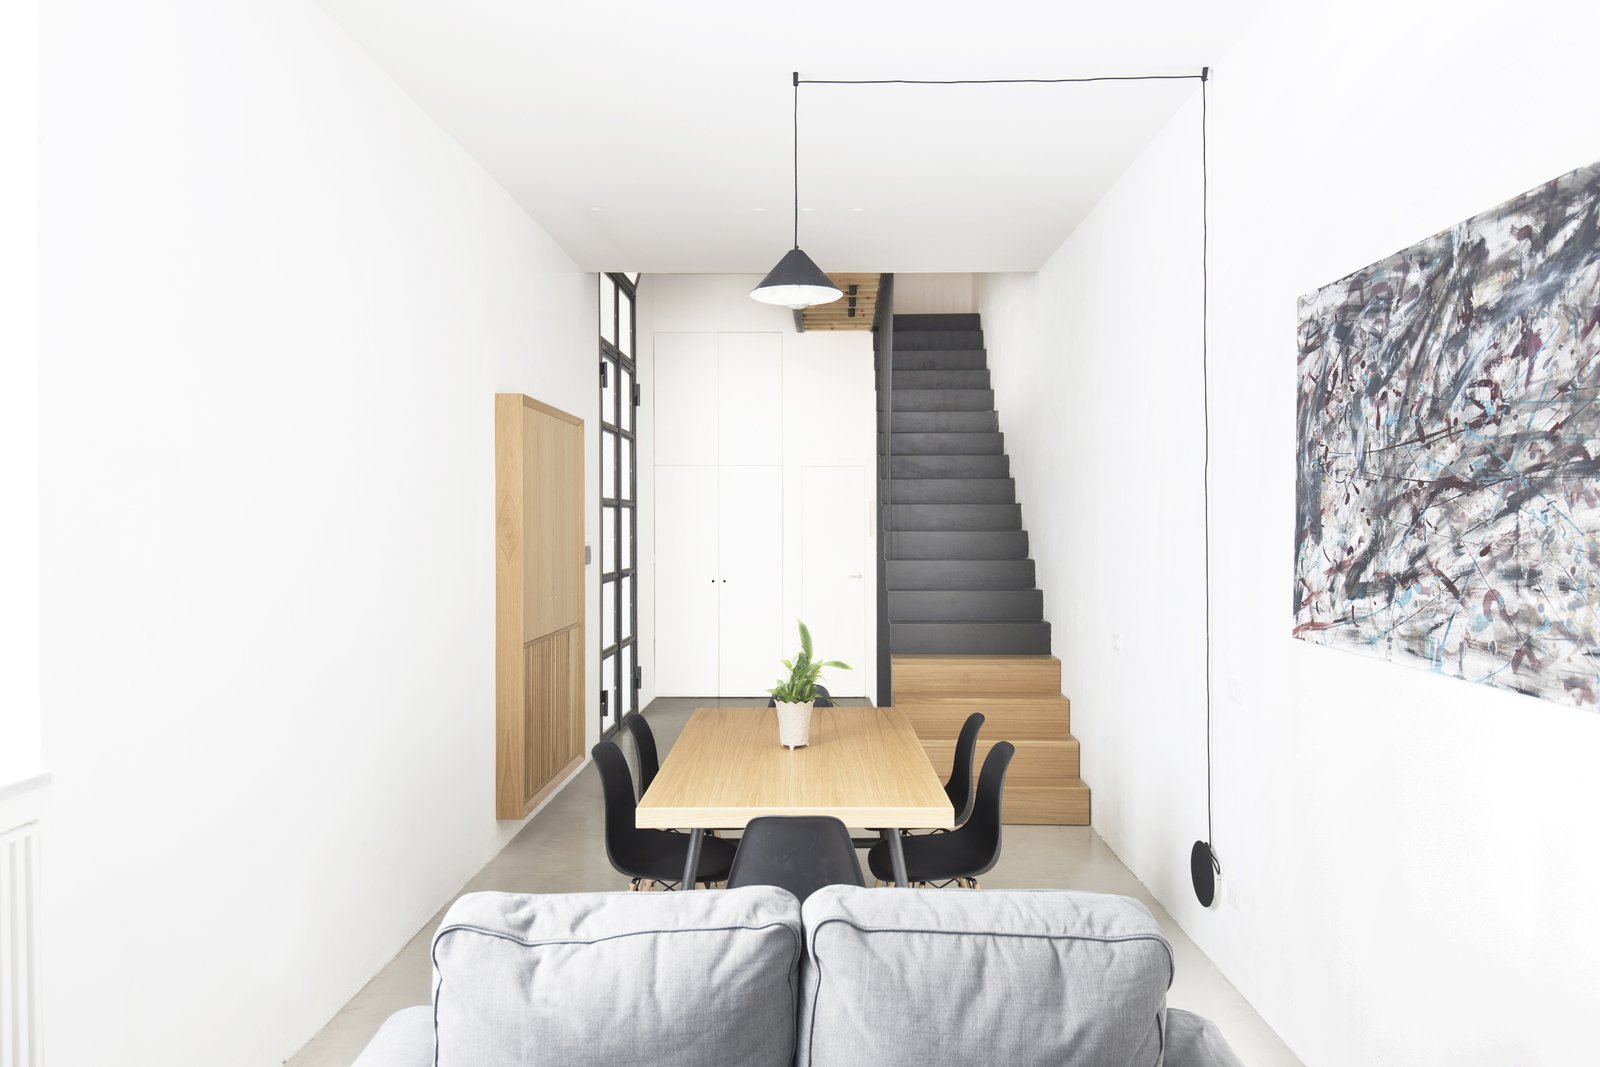 Living Room, Chair, Sofa, Ceiling Lighting, Floor Lighting, Table Lighting, and Pendant Lighting All furniture is made of oak wood except the staircase volume made entirely of black steel.  Best Photos from EXISTENZ MINIMUM- Palermo House A223